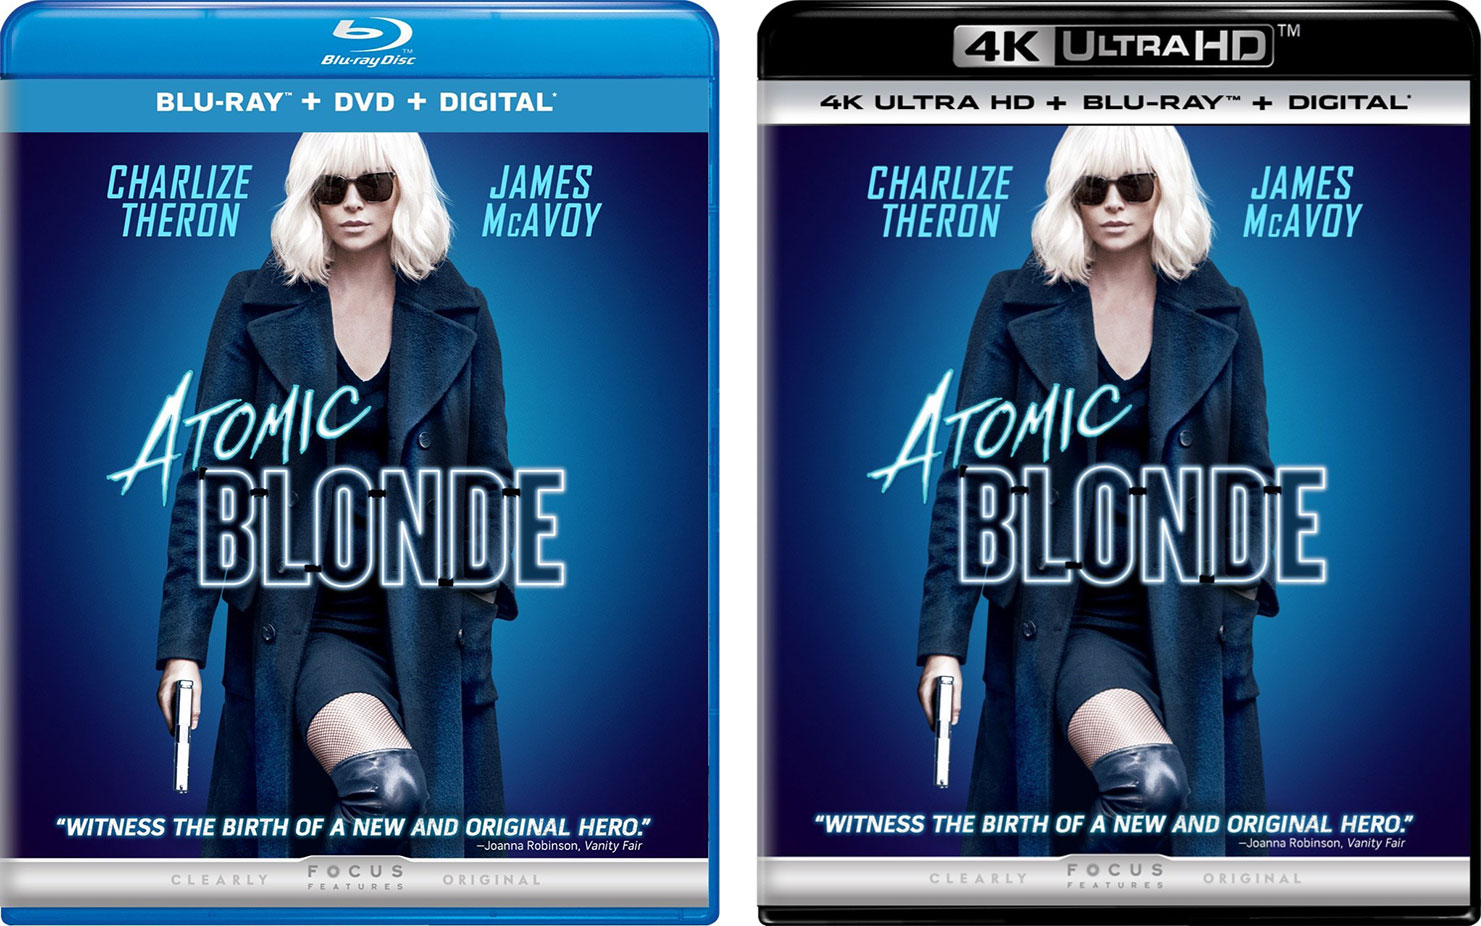 Atomic-Blonde-Blu-ray-4k-Blu-ray-2up-1280px